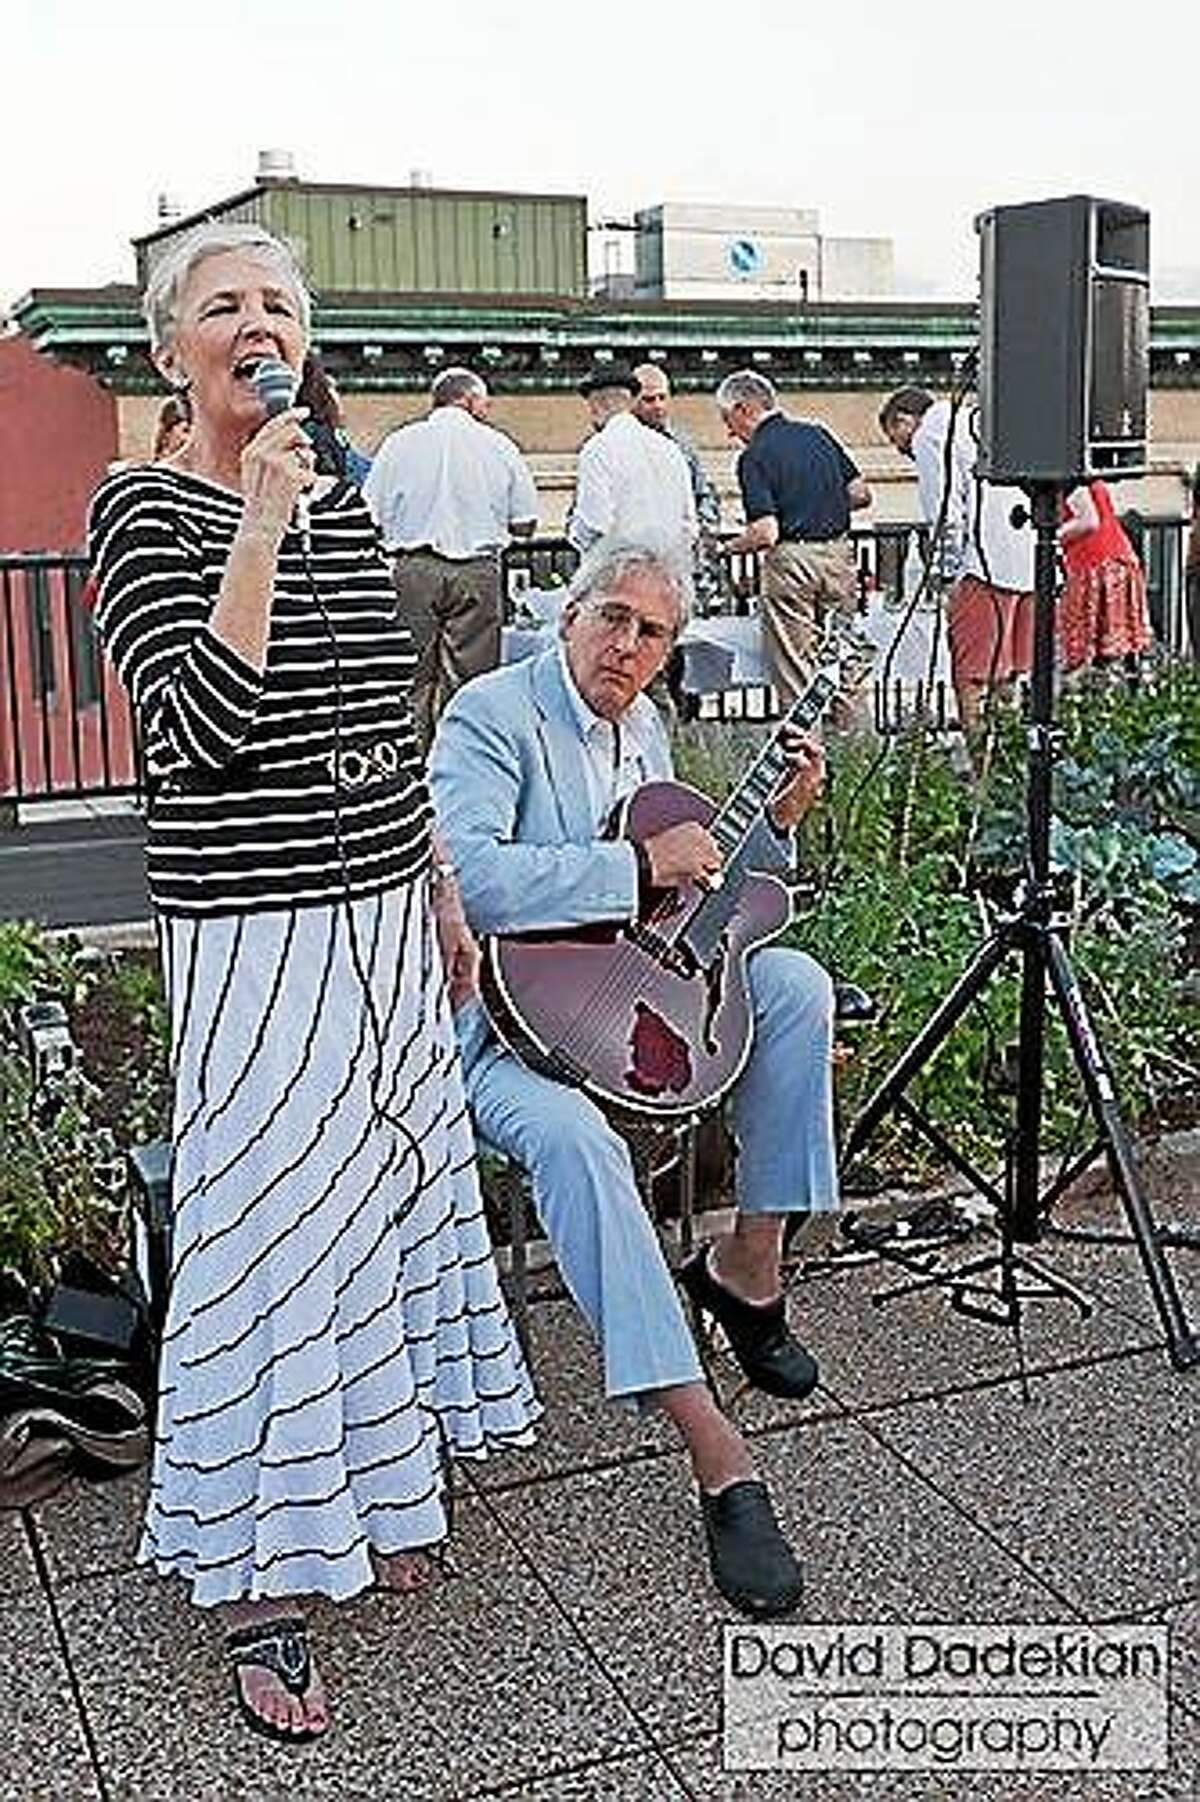 Photo by David Dadekian Photography Guilford singer Julie Harris and guitarist Steven Roane will perform outside on the library patio on Thursday, June 25 at 7 p.m.